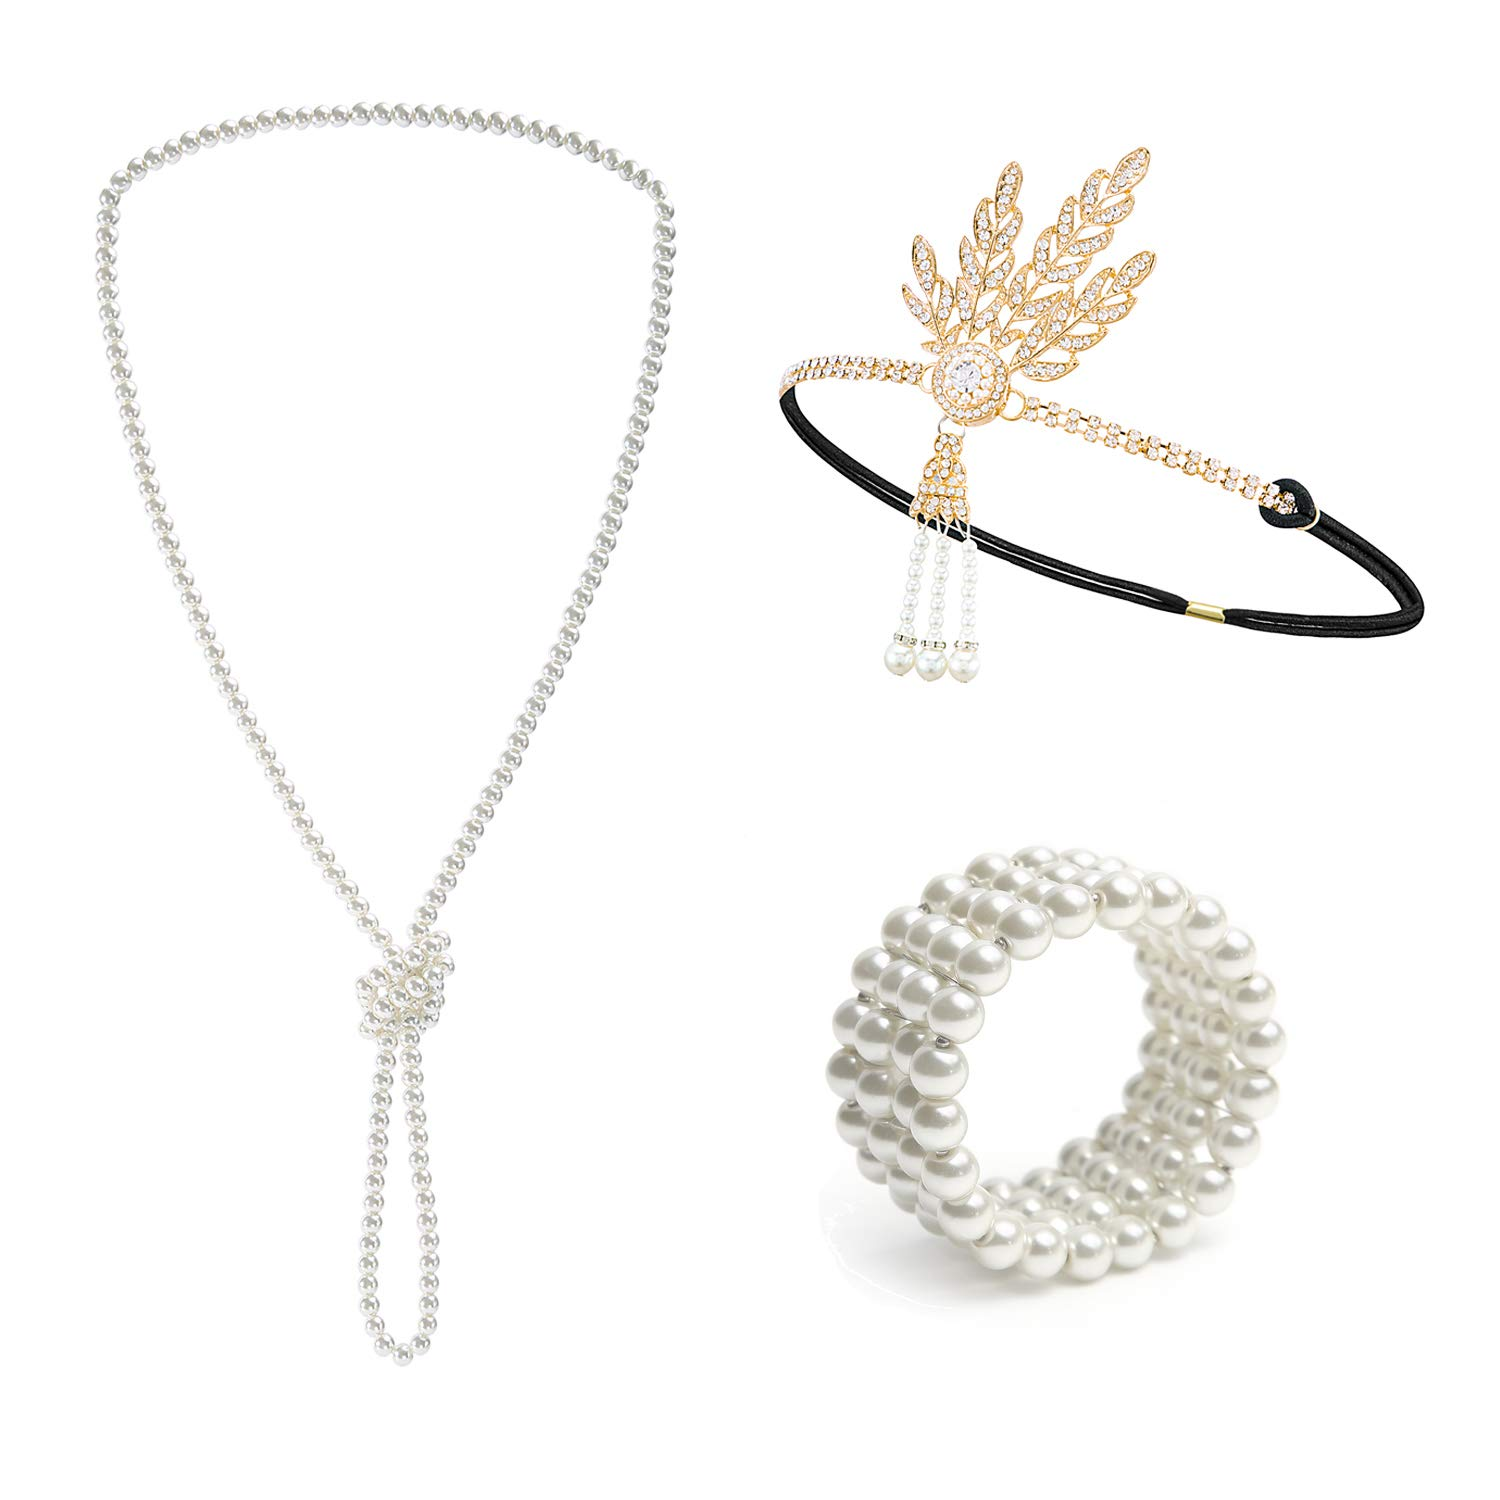 Metme 1920s Great Gatsby Accessories Set Flapper Headband Pearl Necklace Stretch Bracelet